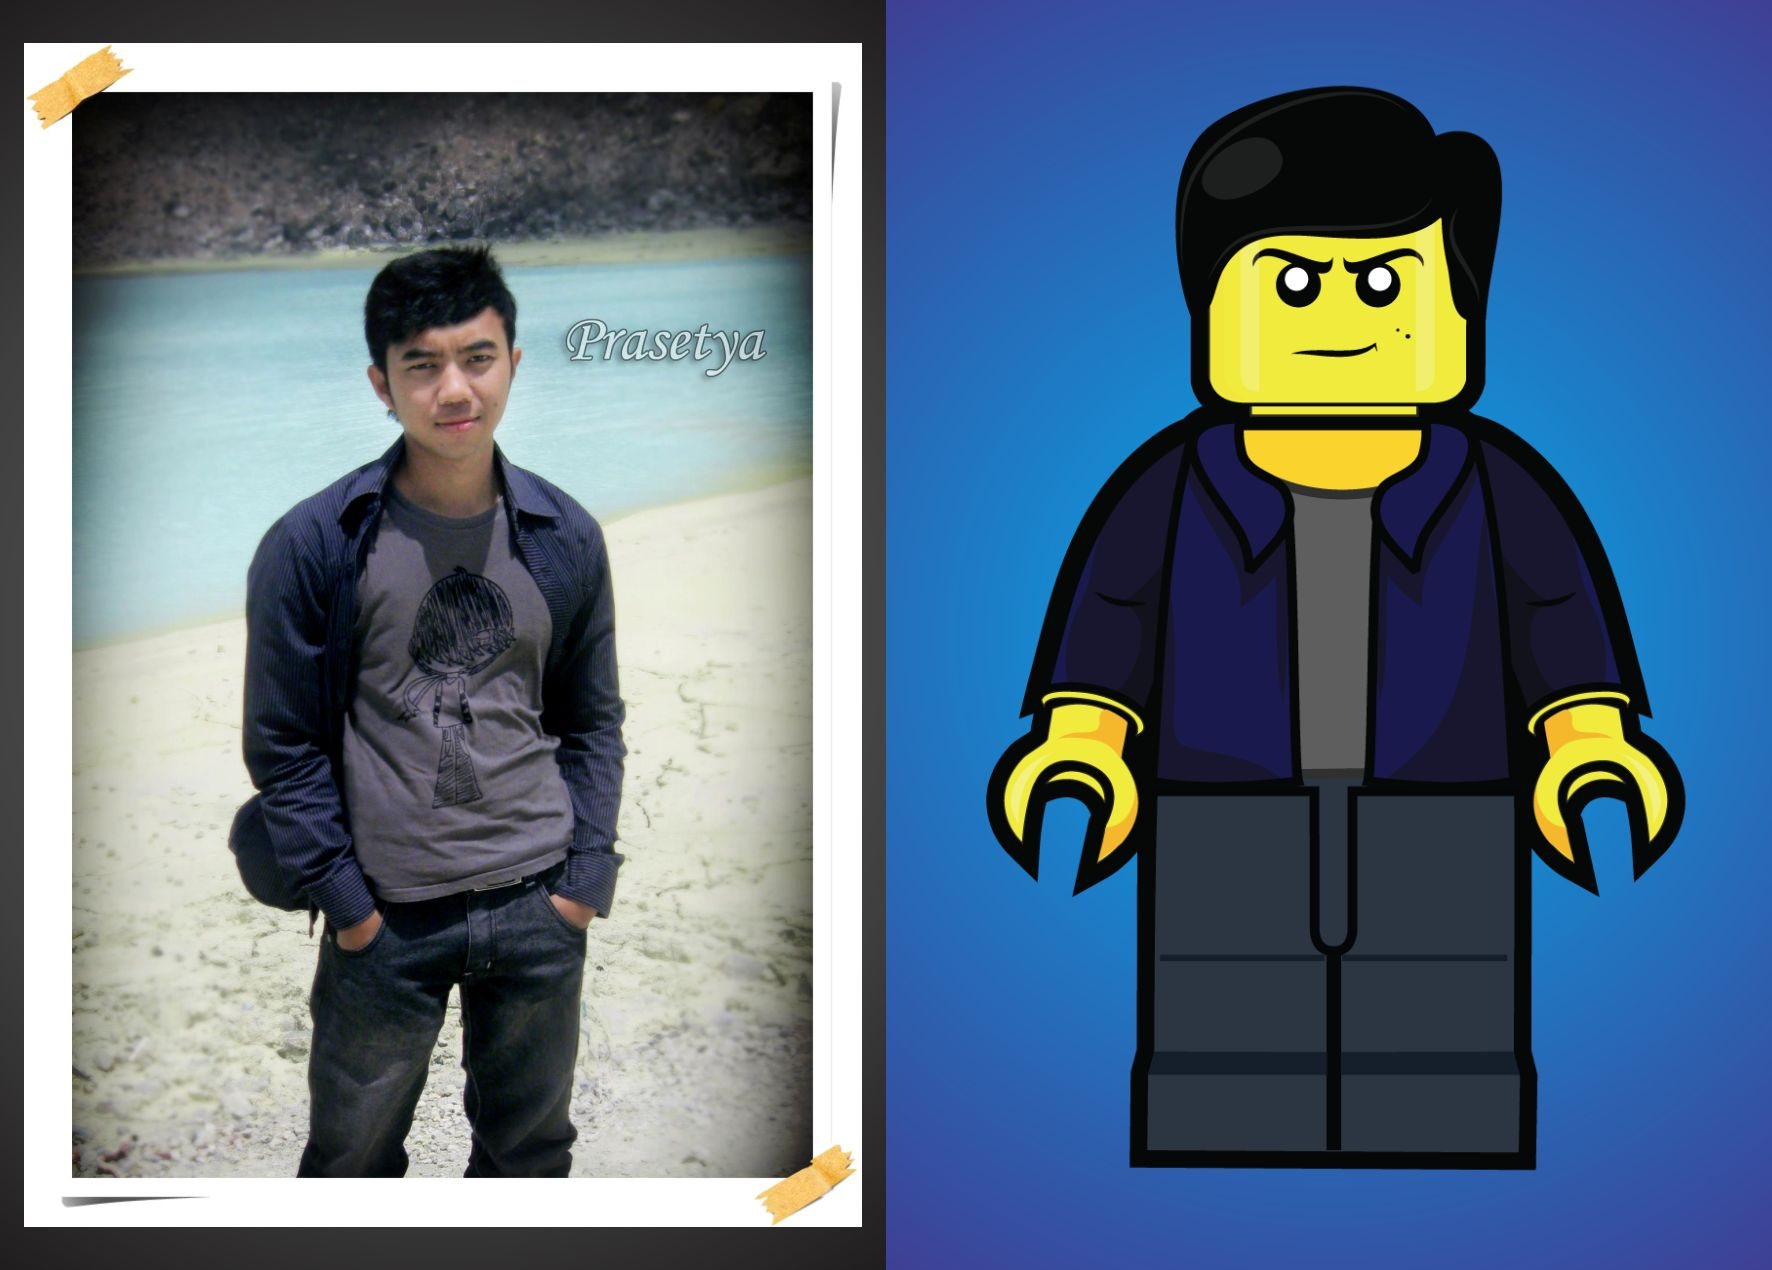 Draw you as LEGO style